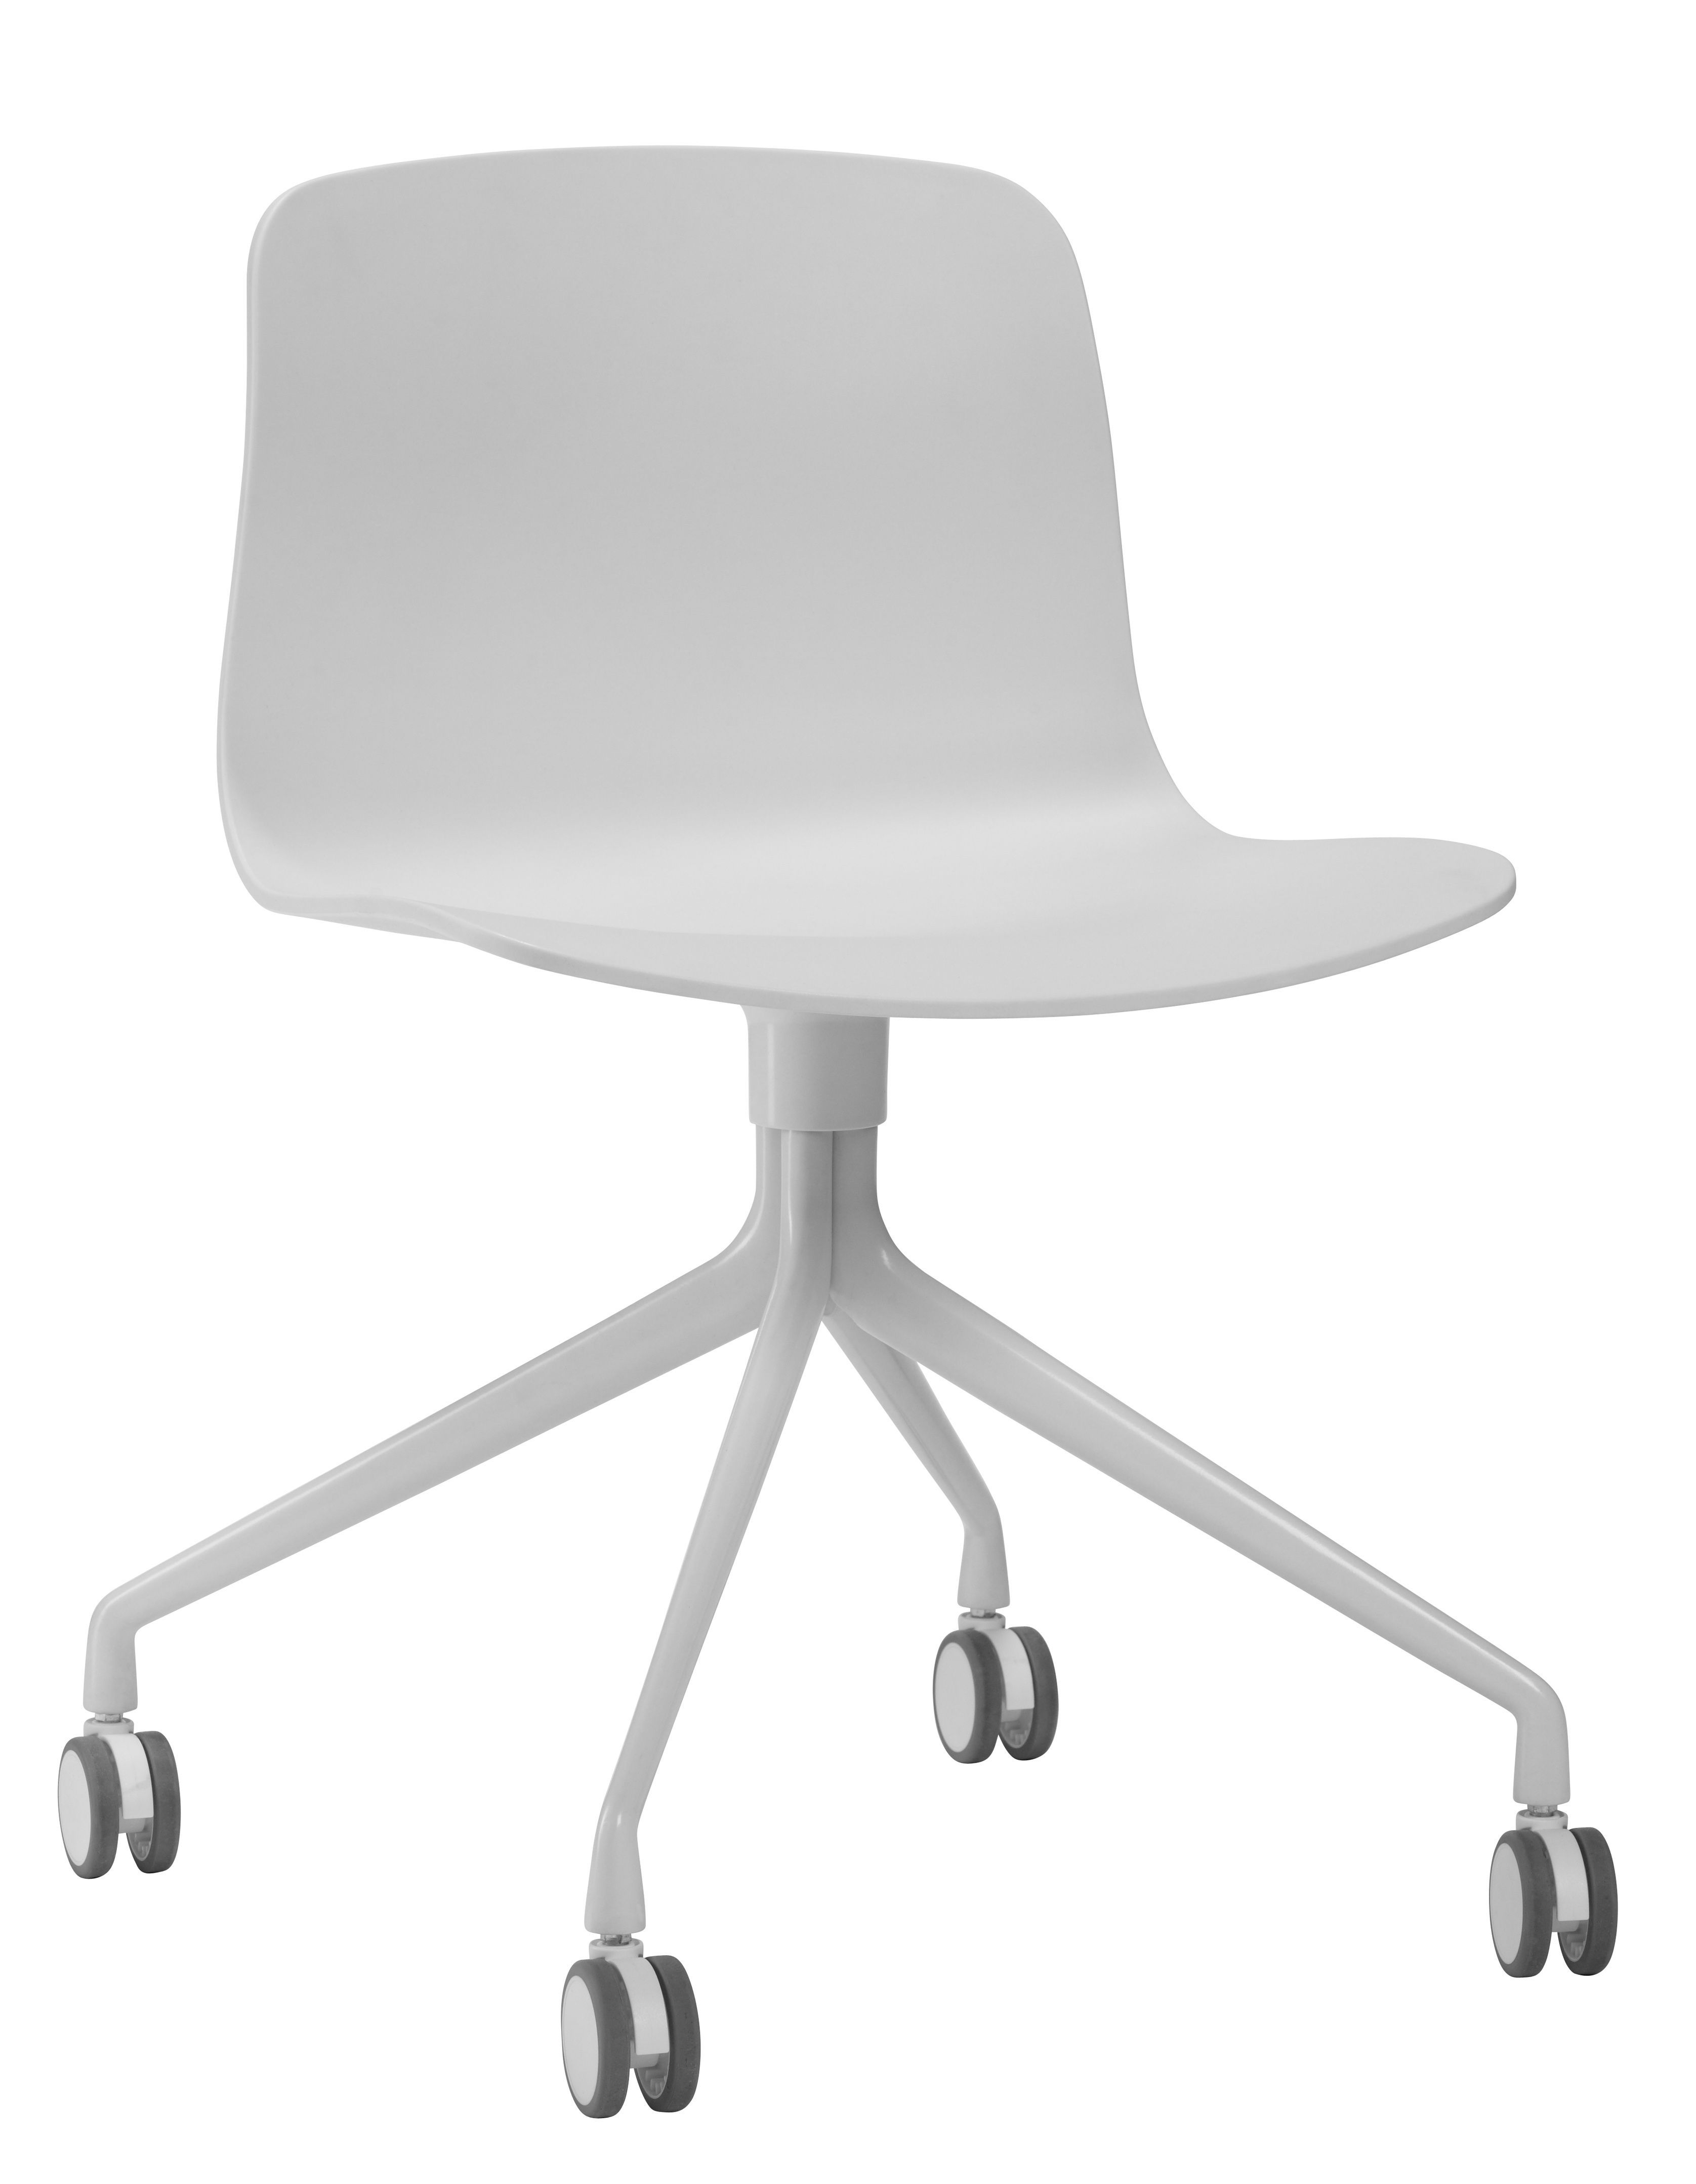 Chaise A Roulettes About A Chair Aac14 Hay Blanc Made In Design Fauteuil Bureau Design Fauteuil Bureau Chaise